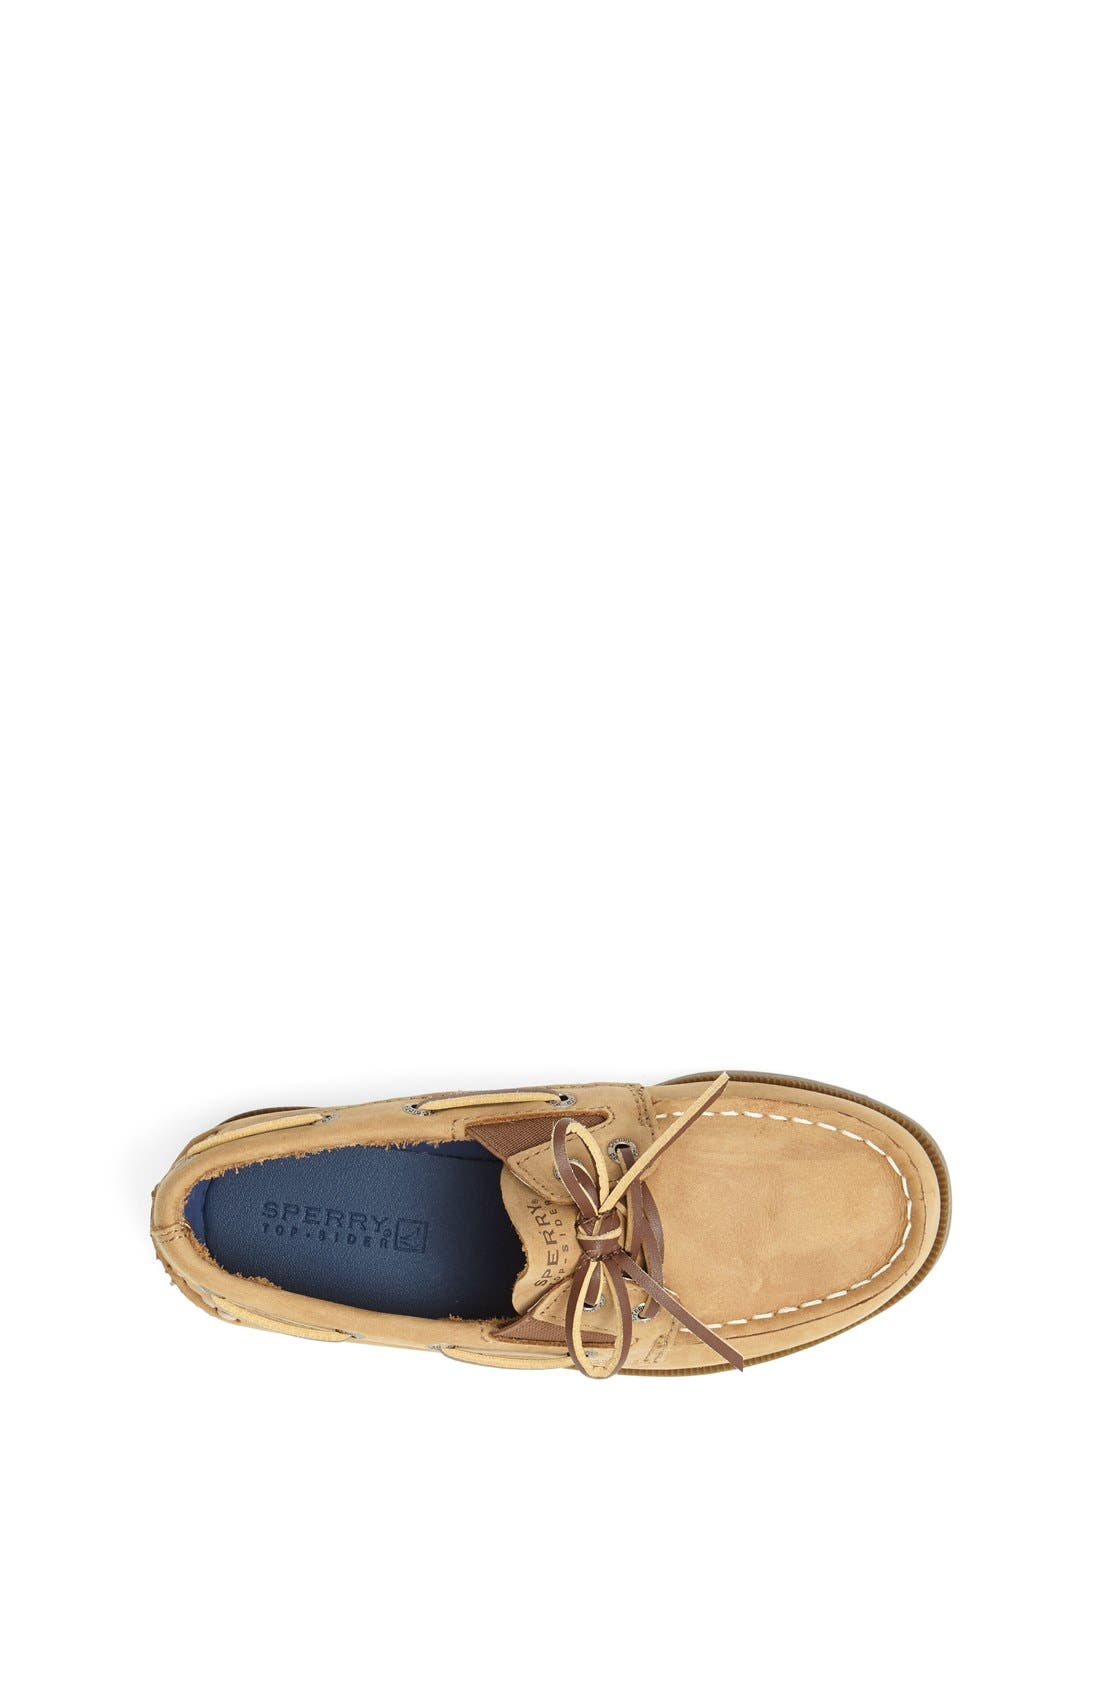 Alternate Image 3  - Sperry Kids 'Authentic Original' Boat Shoe (Walker, Toddler, Little Kid & Big Kid)